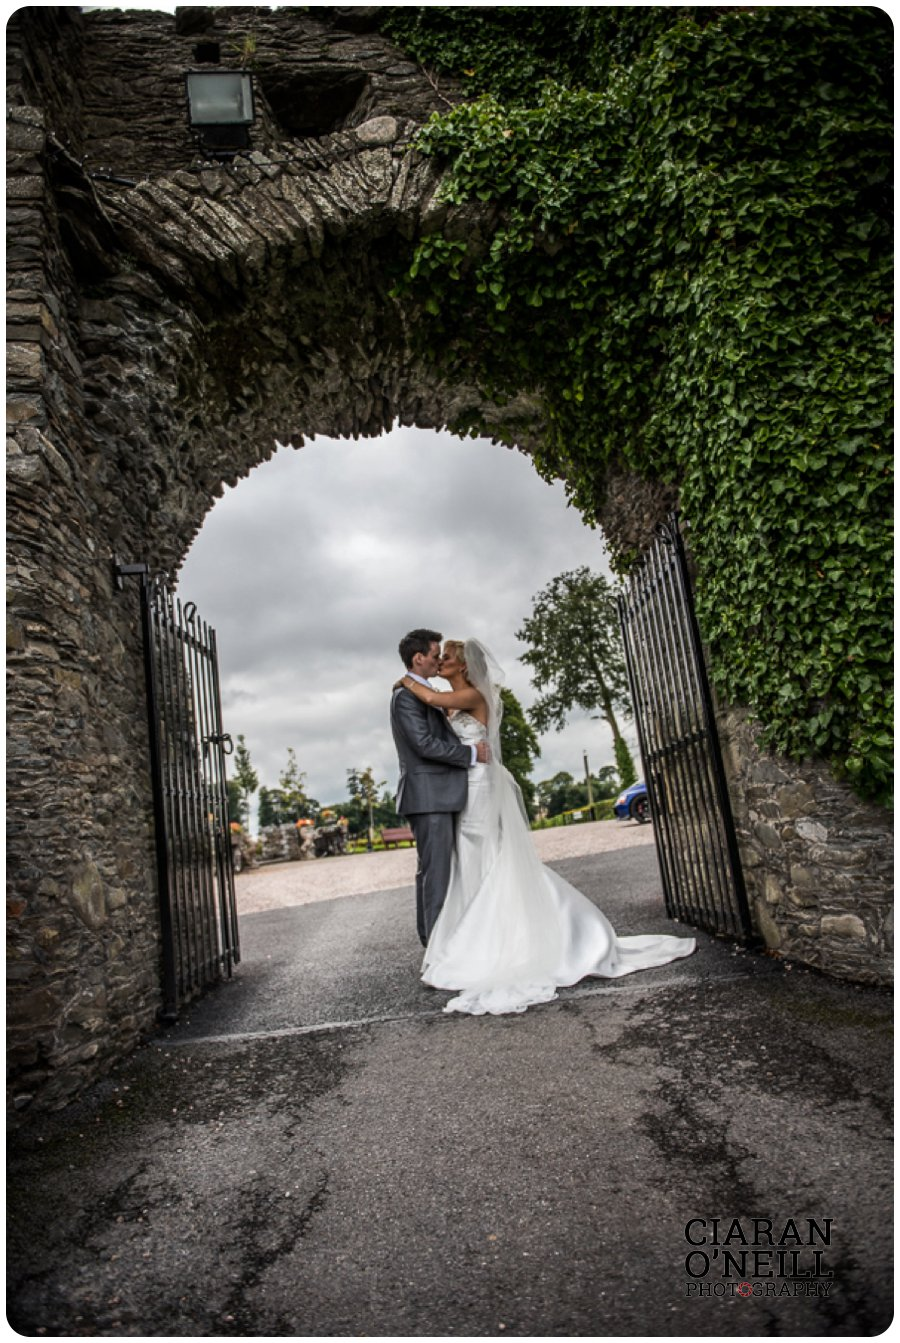 Clare & Mark's wedding at Darver Castle by Ciaran O'Neill Photography 13